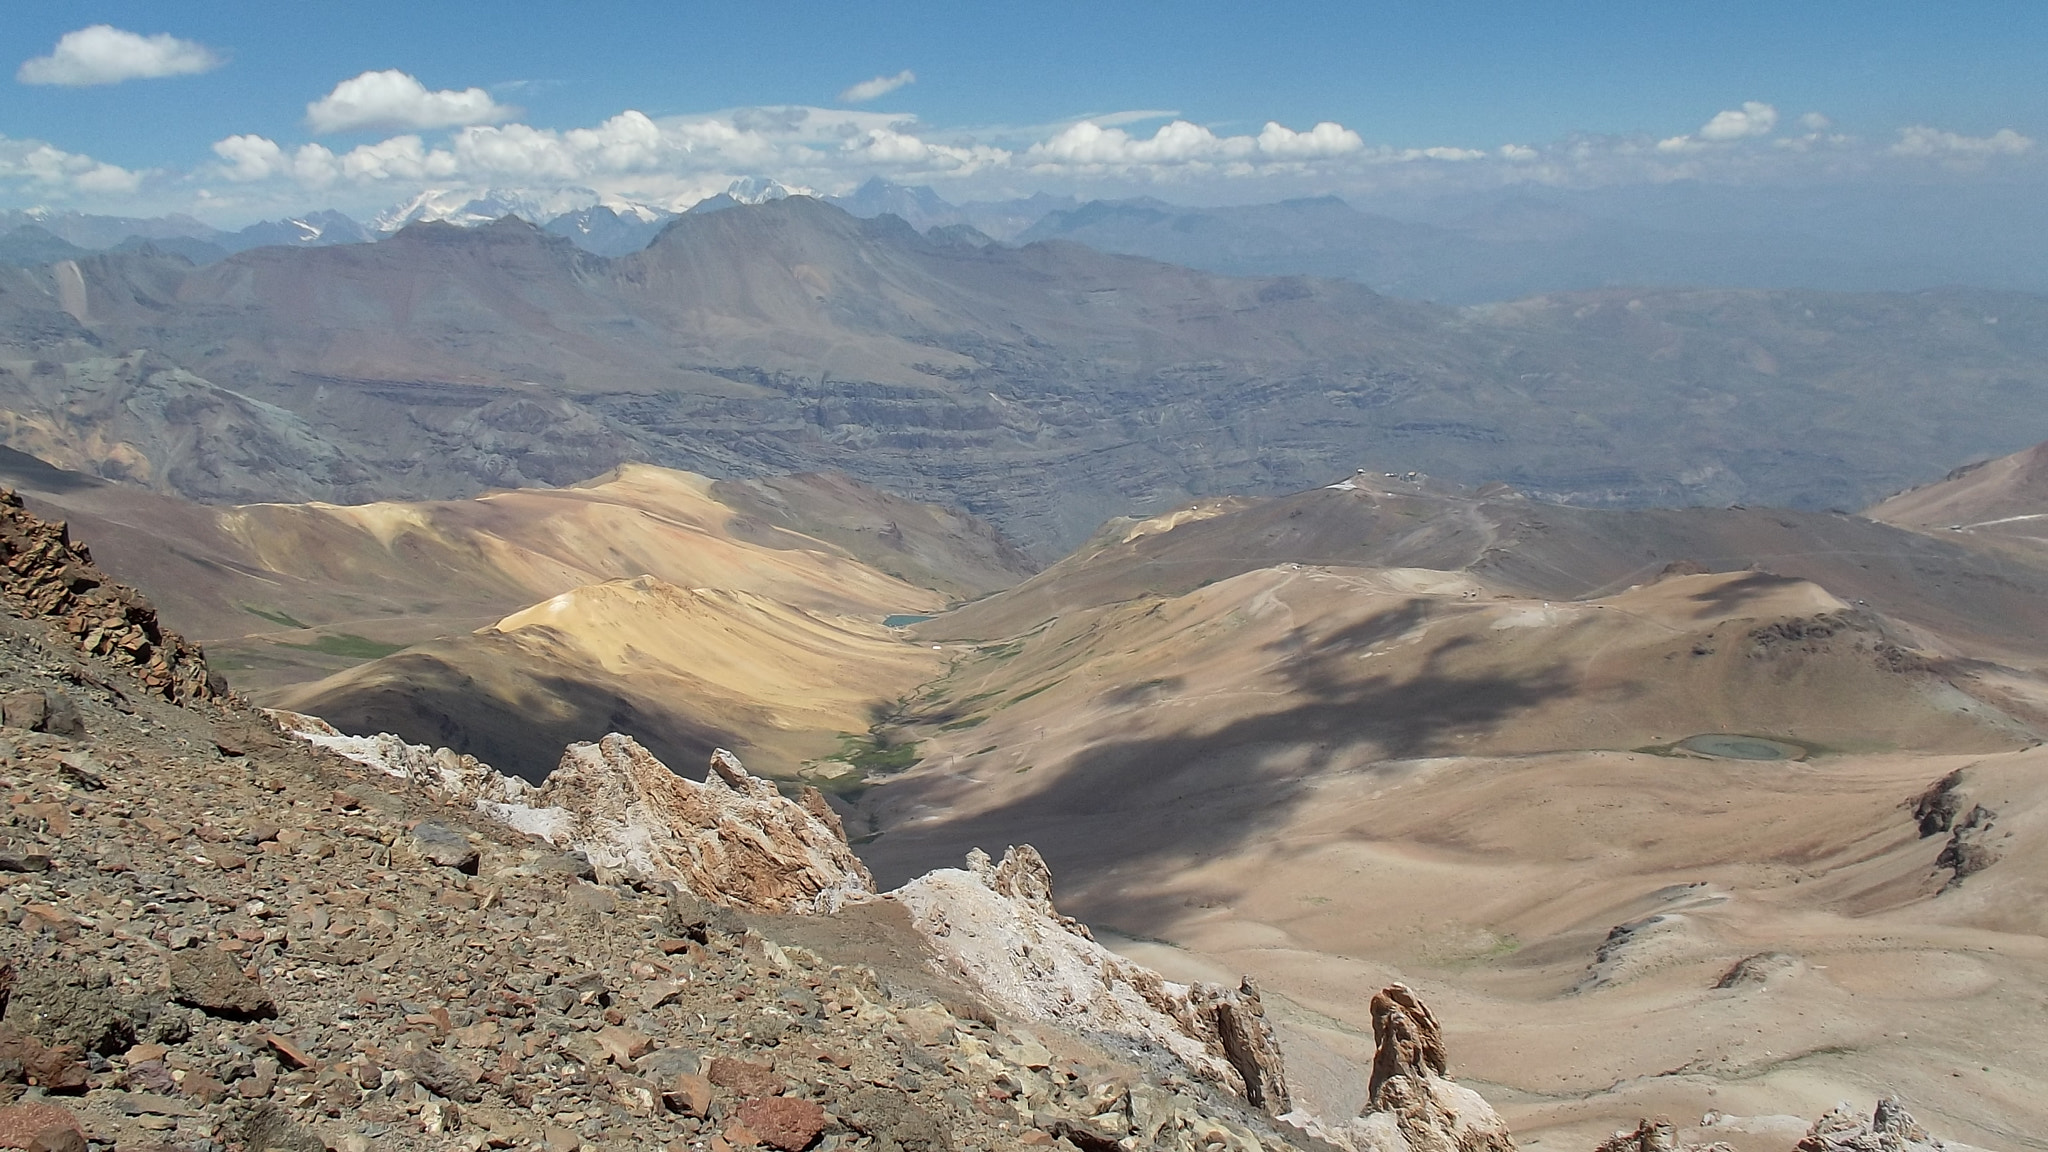 Photograph Andes Centrales by andres vejar on 500px